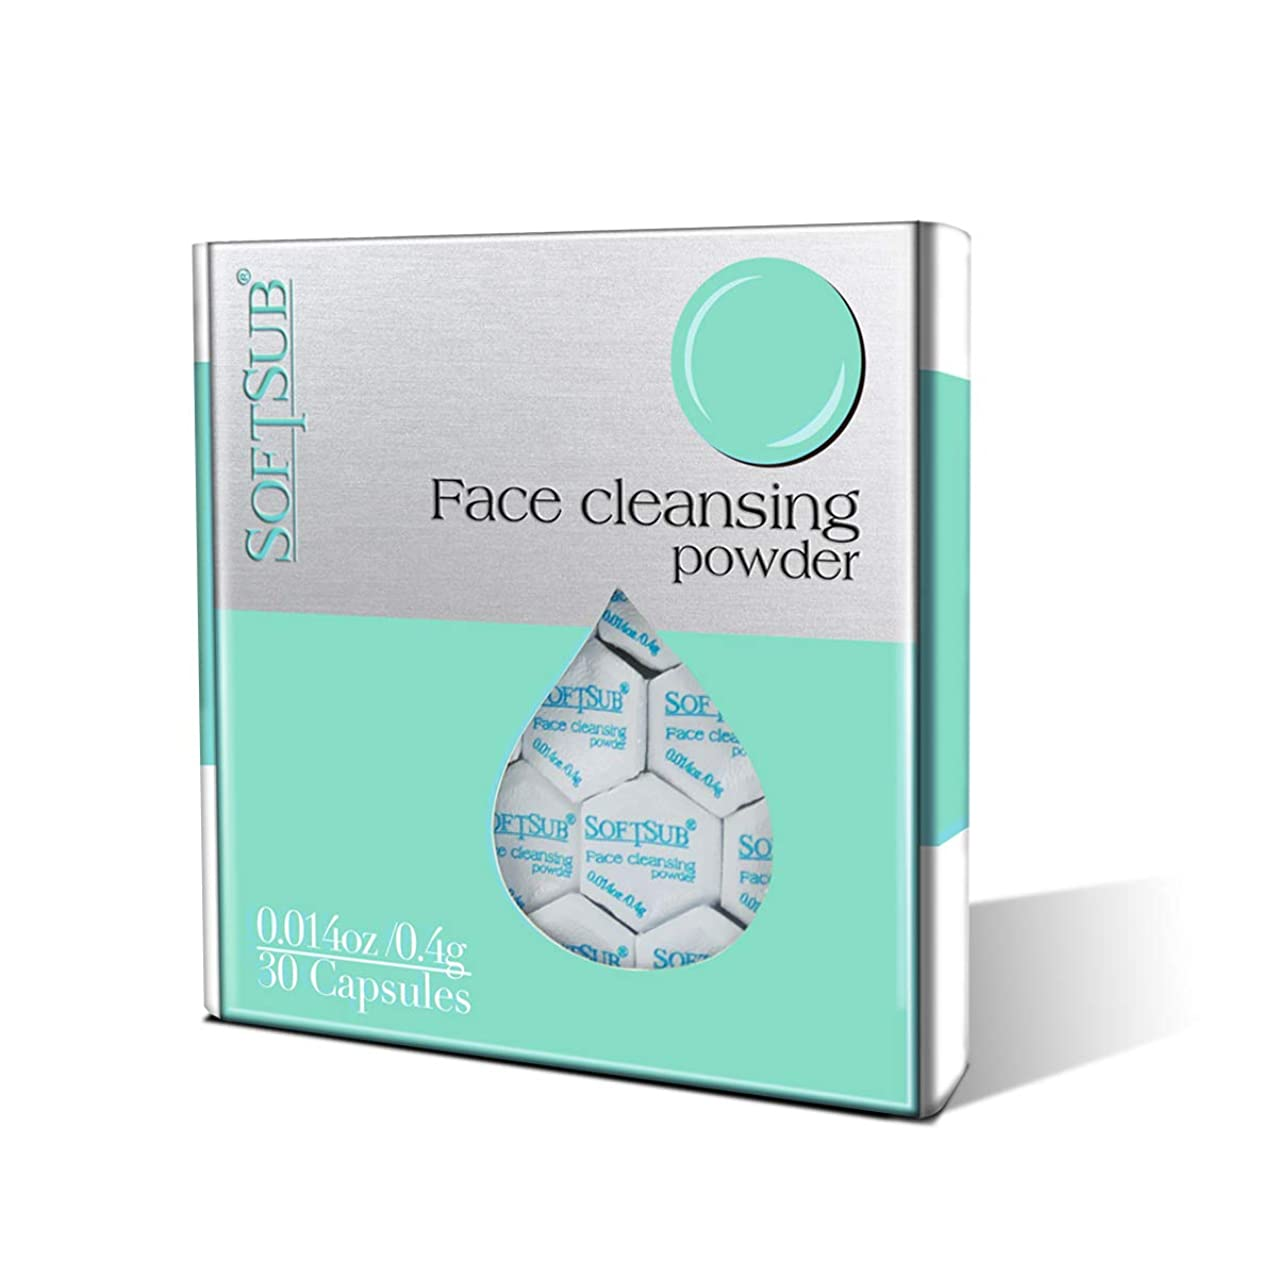 Face cleanser By Softsub Travel Packing Design with Organic & Natural Ingredients, Deep Cleansing & Exfoliation, Clear up Blemish & Pores, for Dry & Sensitive Skin - 30 Capsules-Natural Face Wash